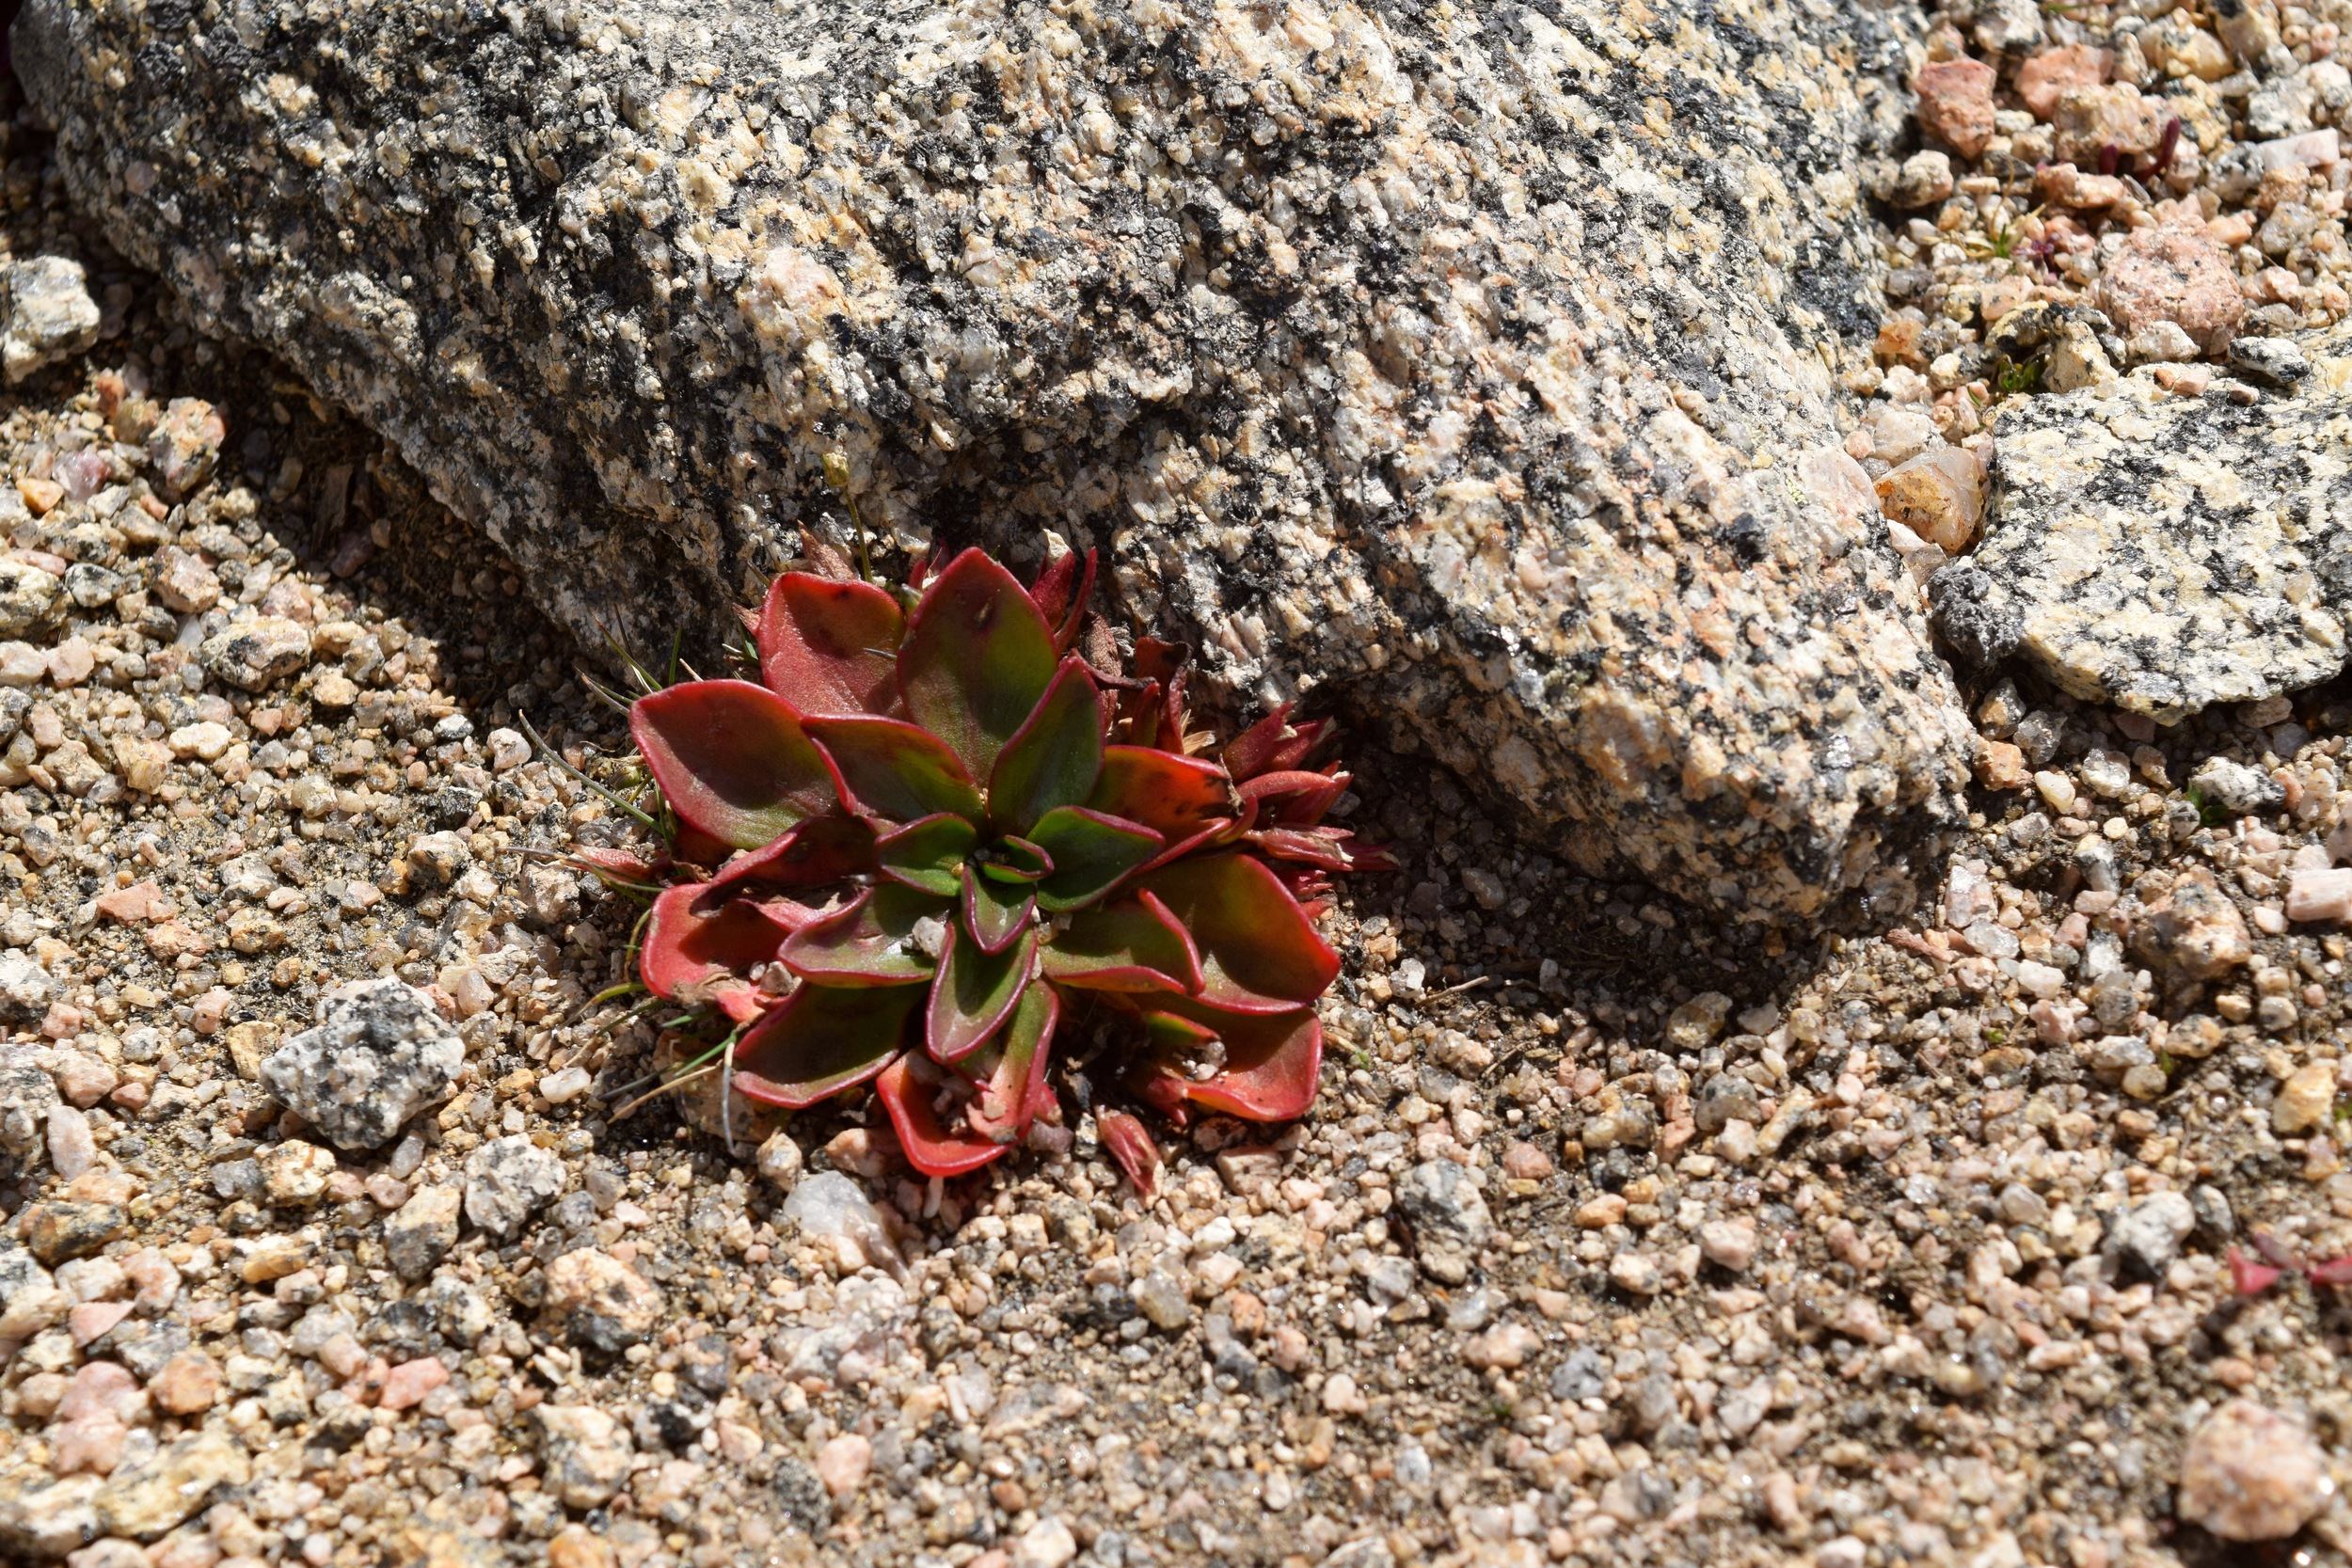 At around 13,600 feet, these adorable little succulents are the only things that will grow!